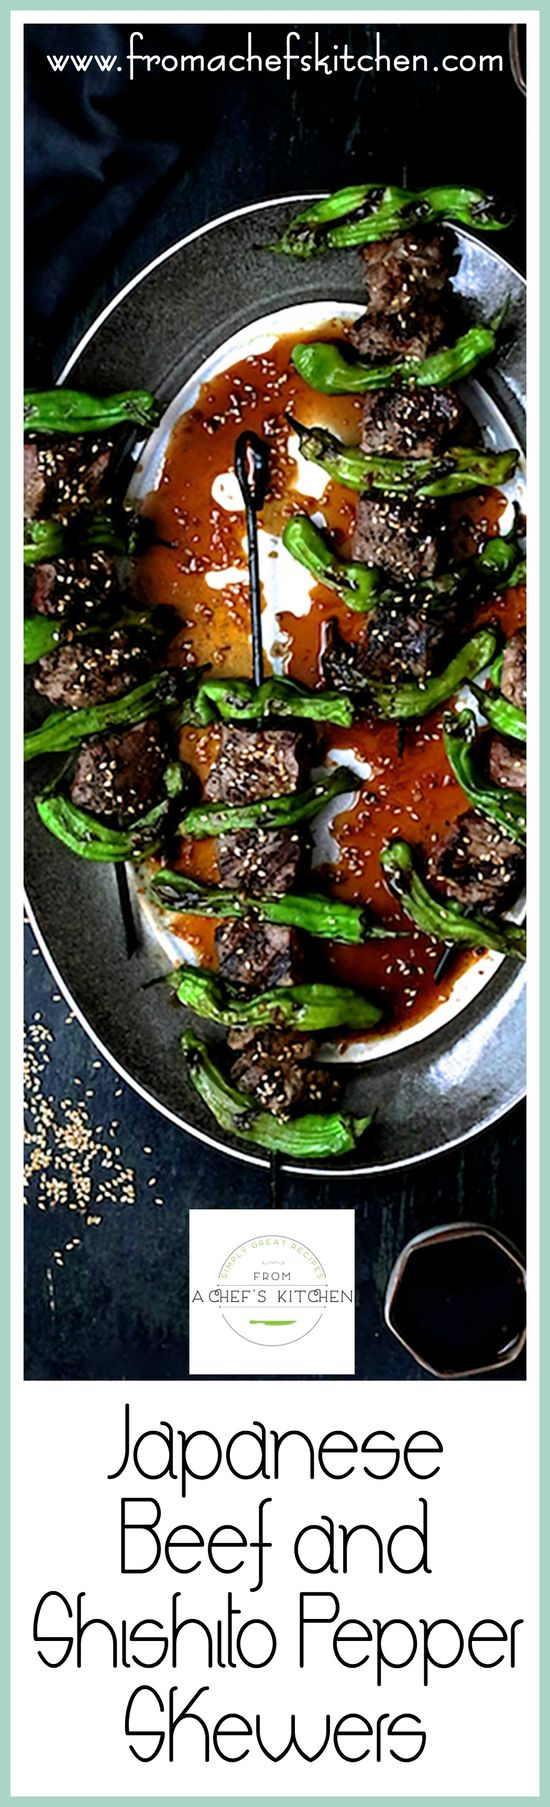 Carol / From A Chef\'s Kitchen (chefcarolb) on Pinterest